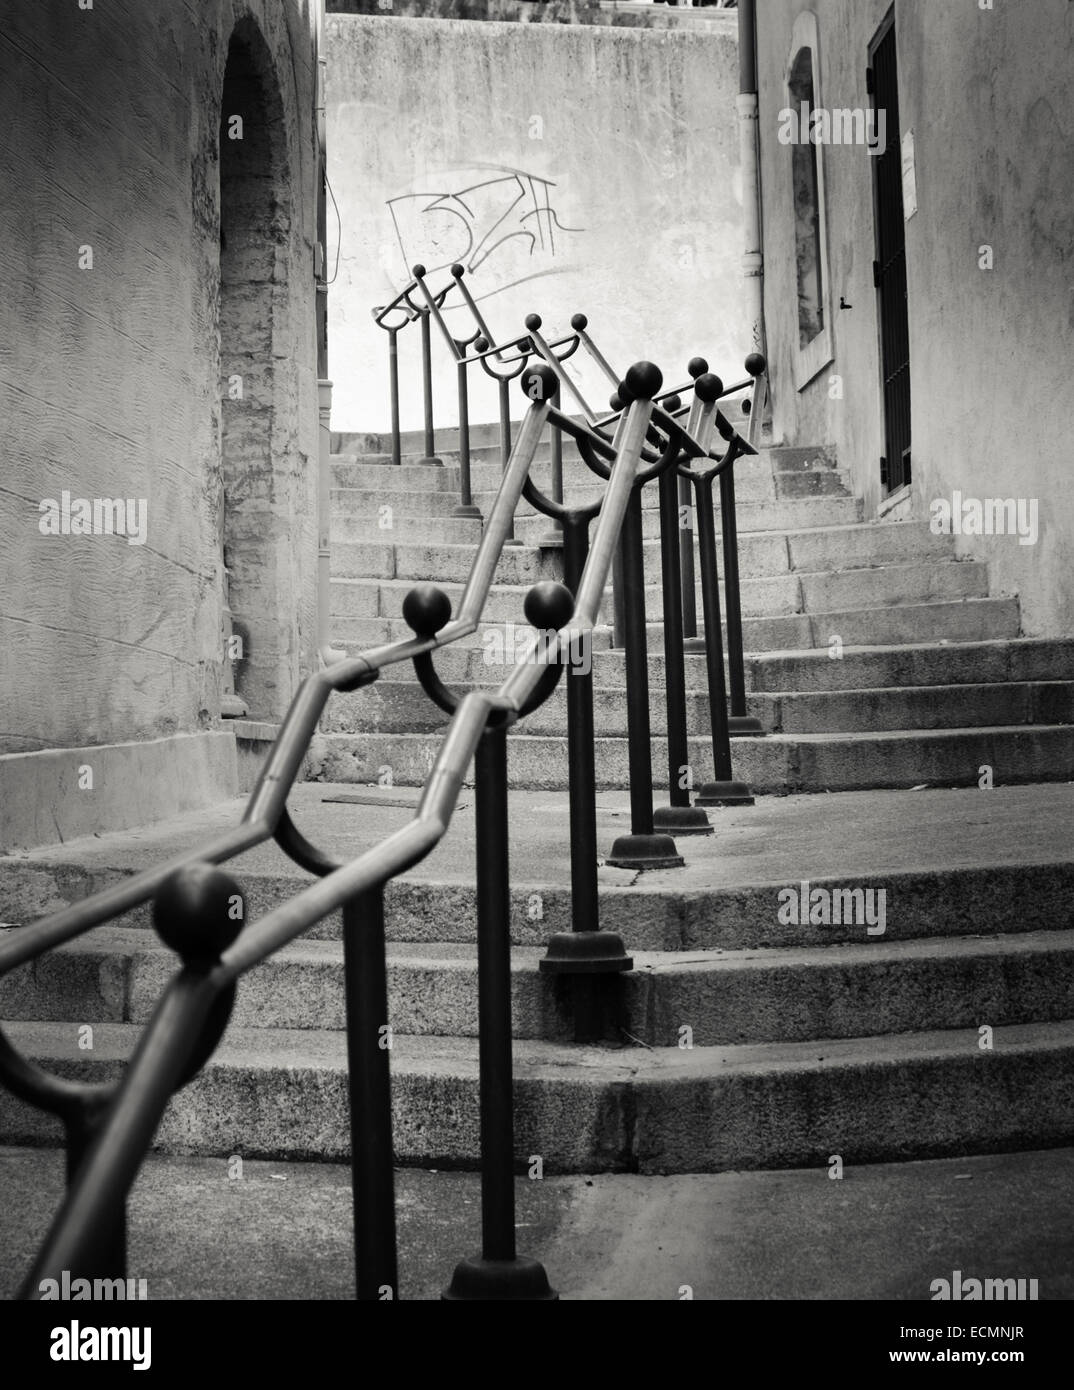 Metal hand rails lead the eye up stone steps to graffiti in the papal town of Avignon, Provence, France - Stock Image